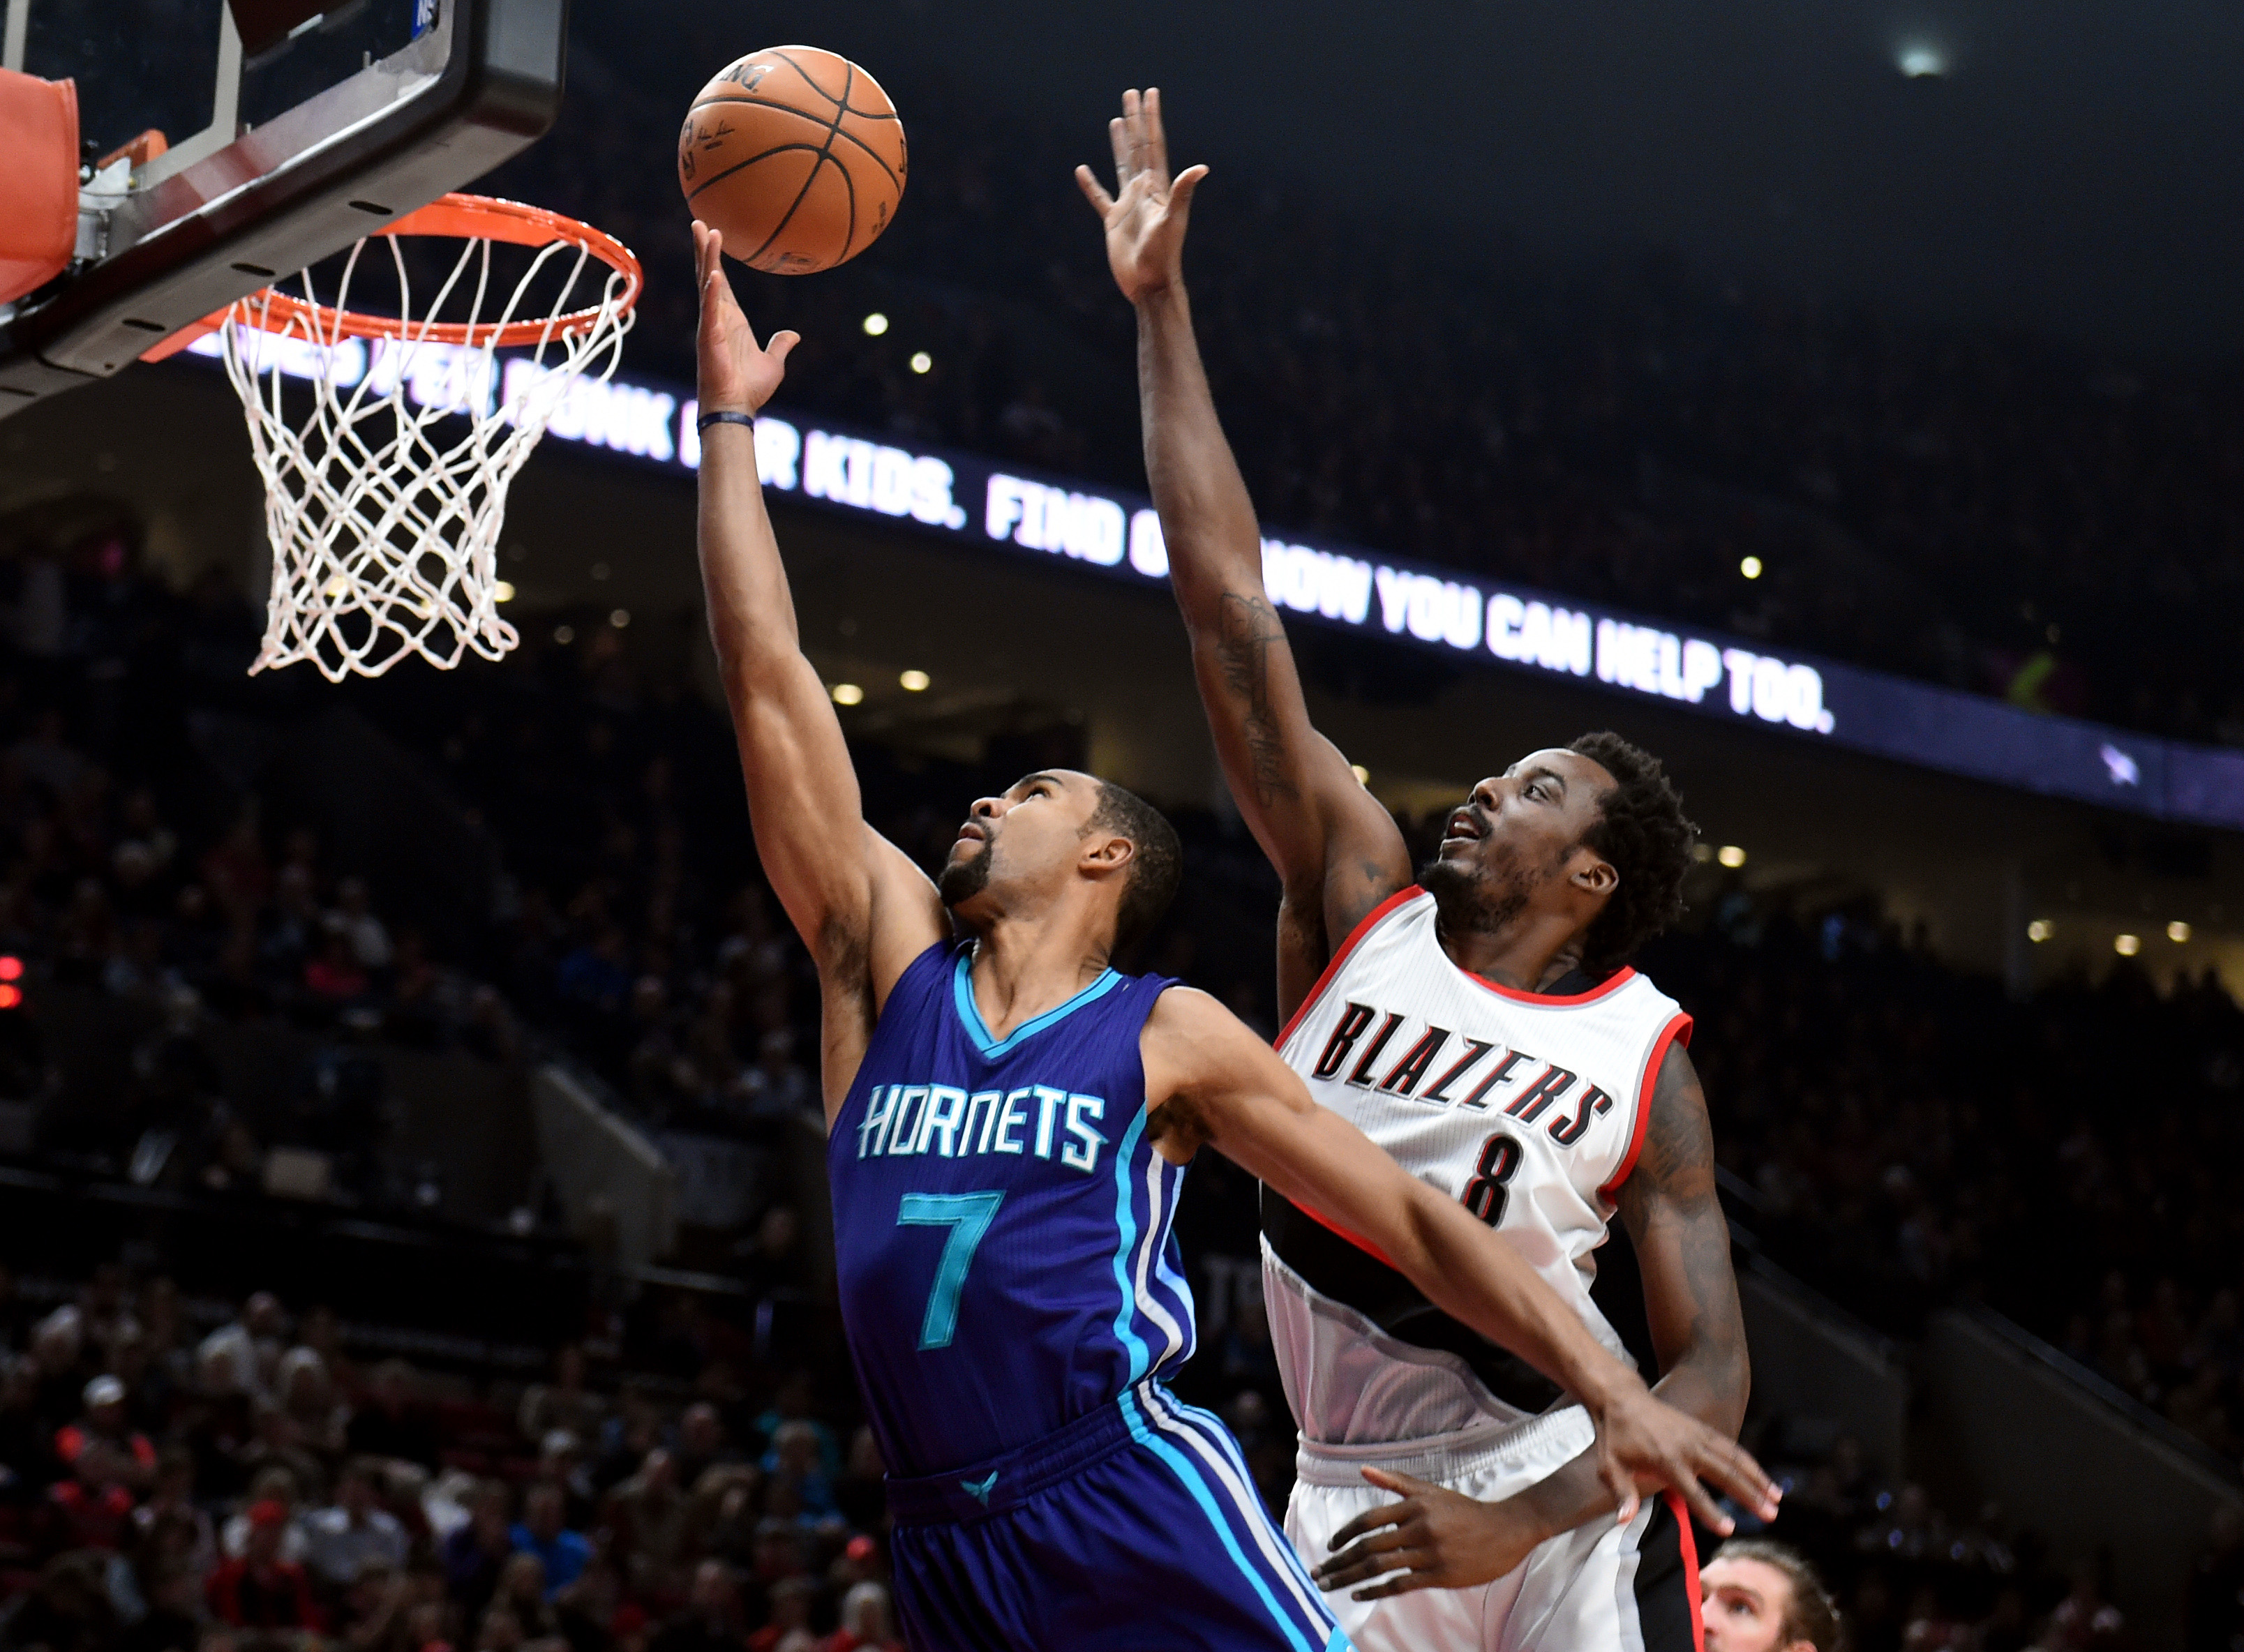 9851621-nba-charlotte-hornets-at-portland-trail-blazers